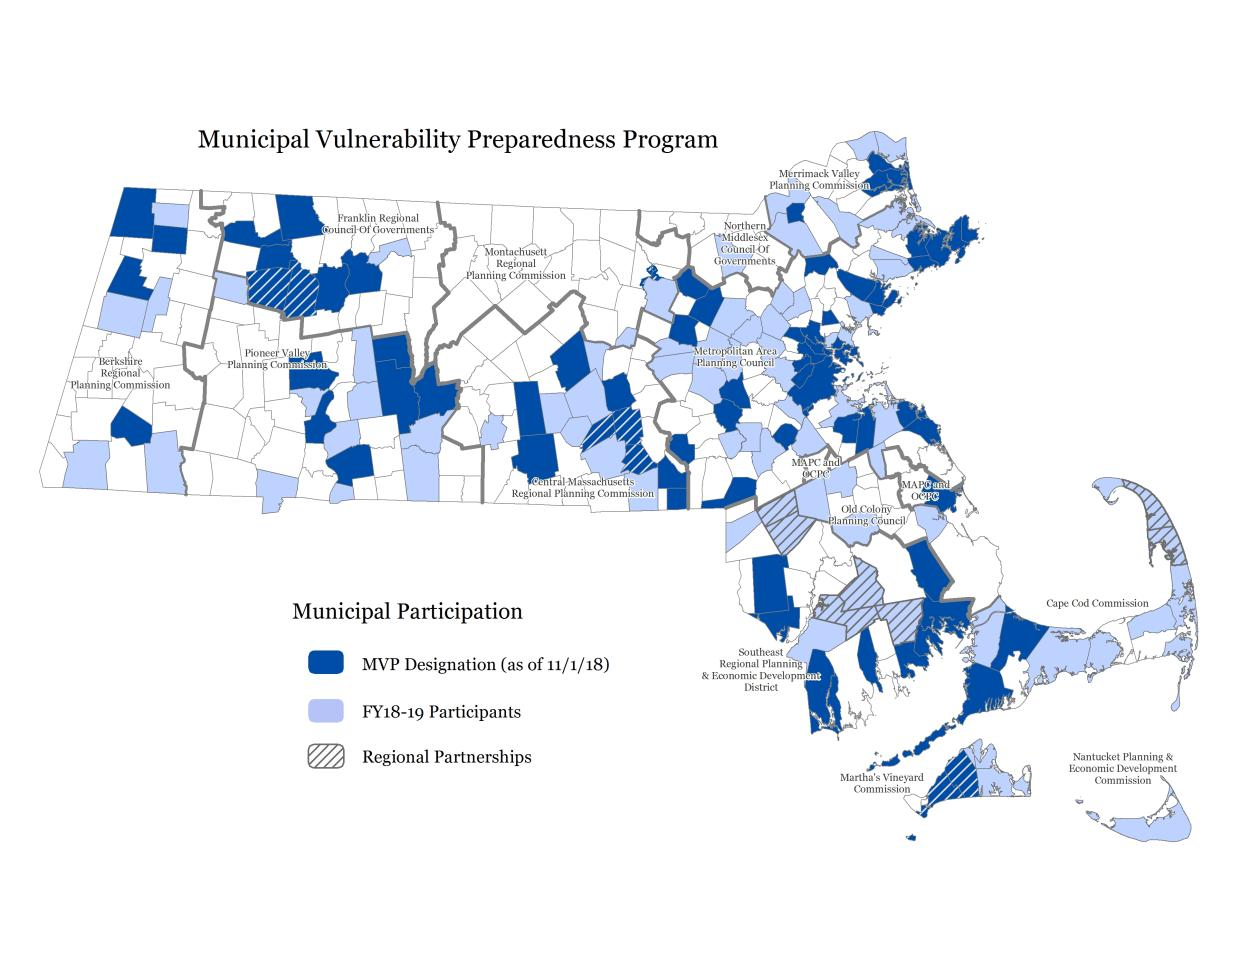 Municipal Participation map